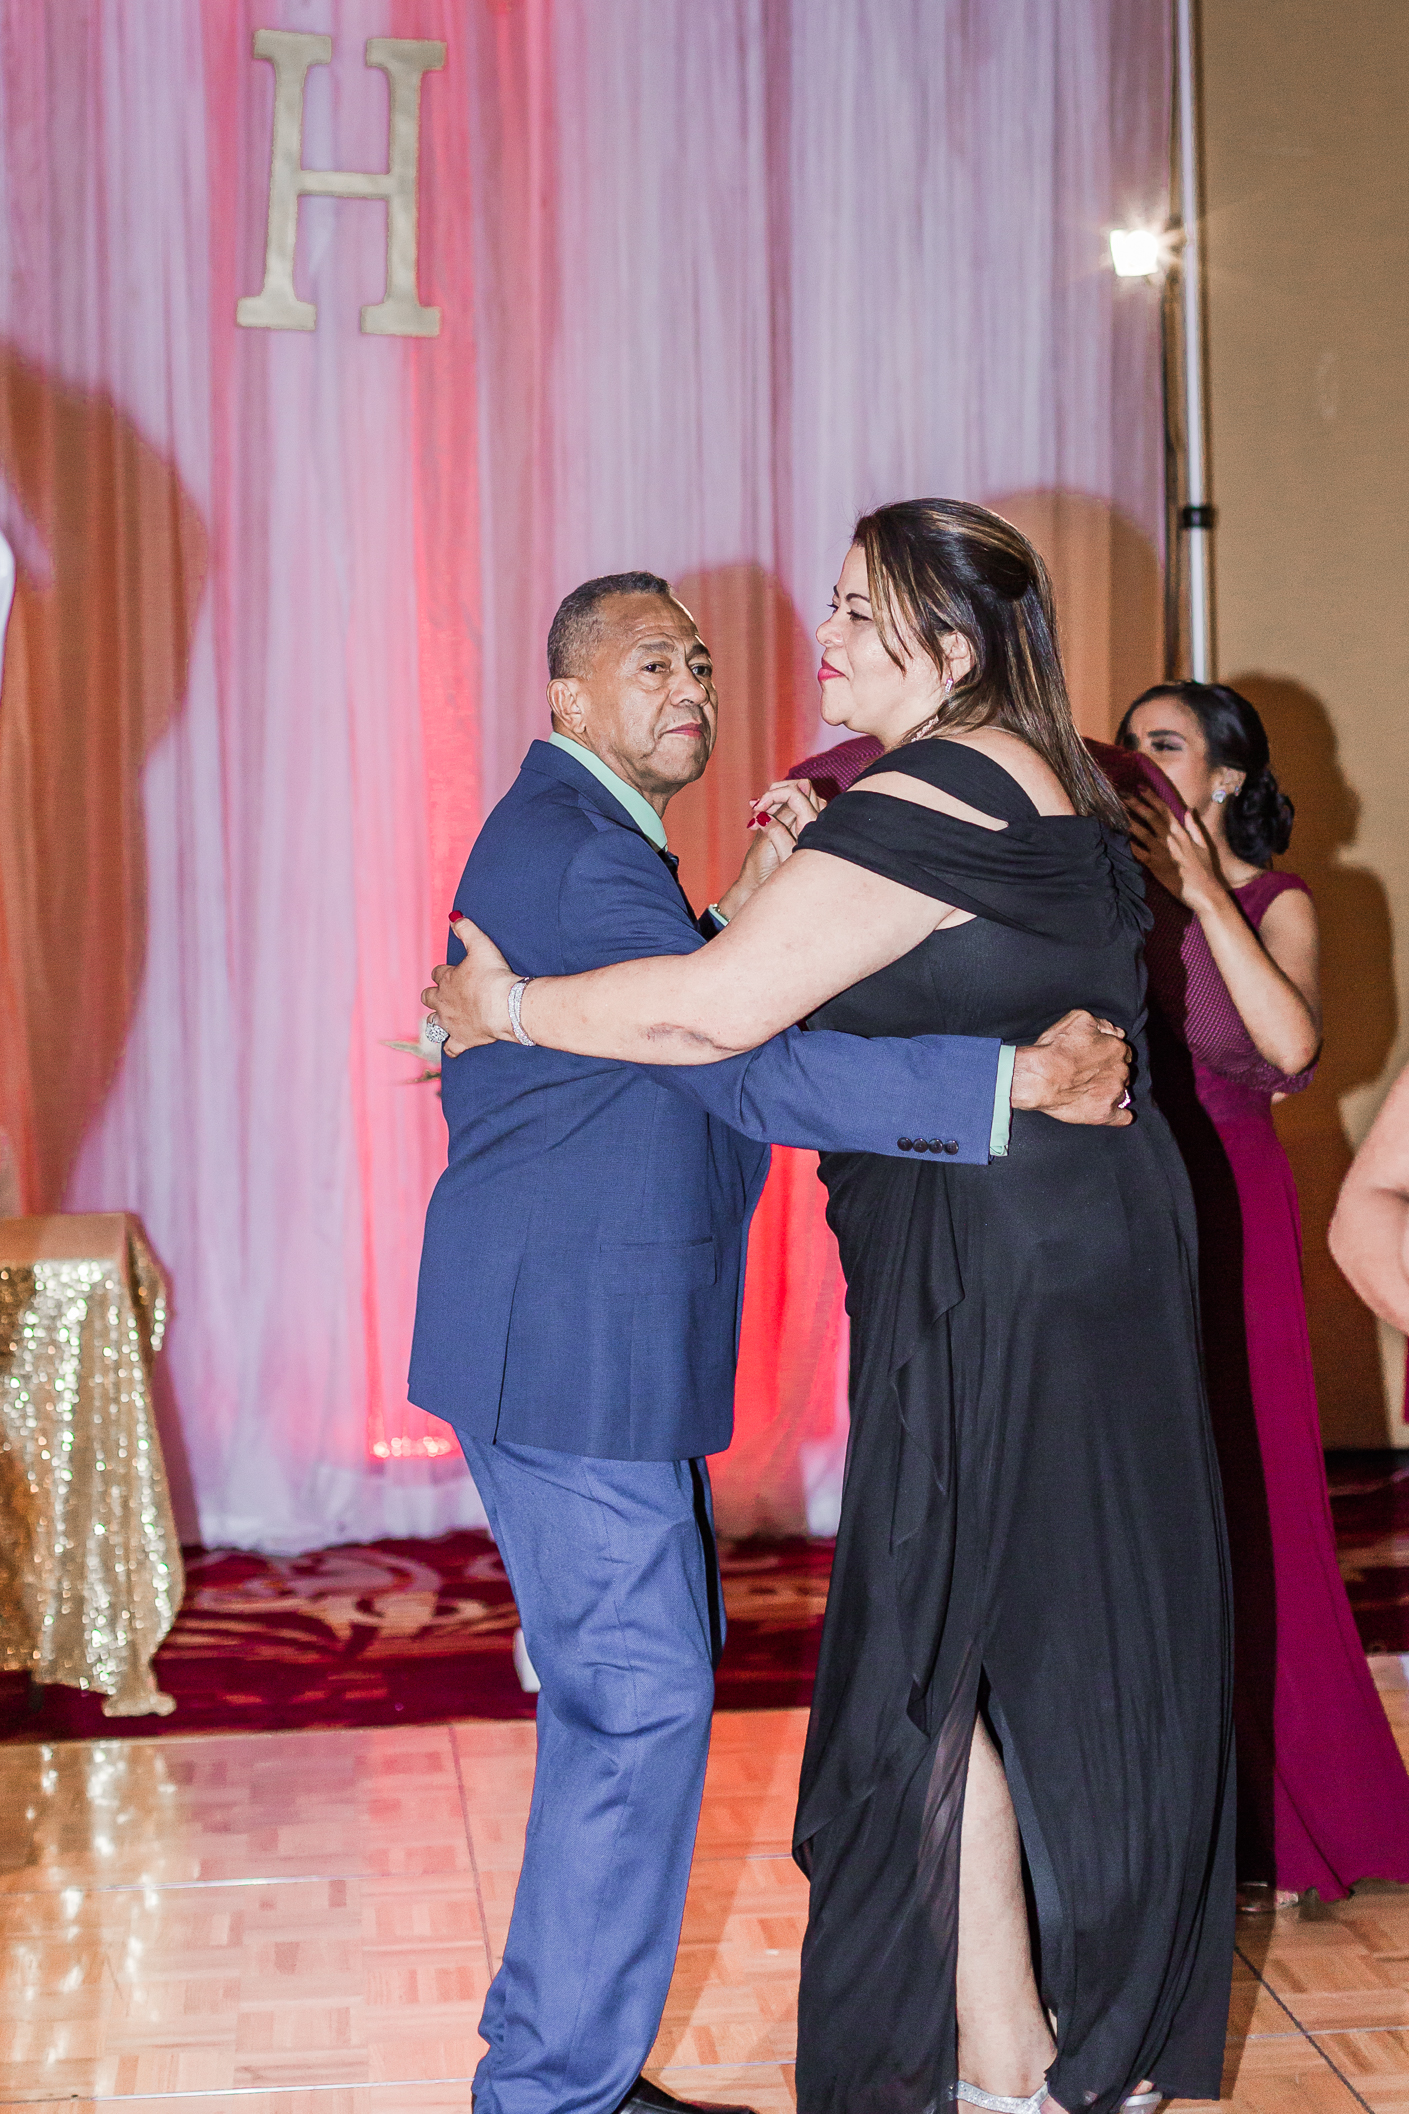 Crowne Plaza Hotel Reading Pennsylvania burgandy and gold  Wedding Lytle Photo Co (5 of 7).jpg